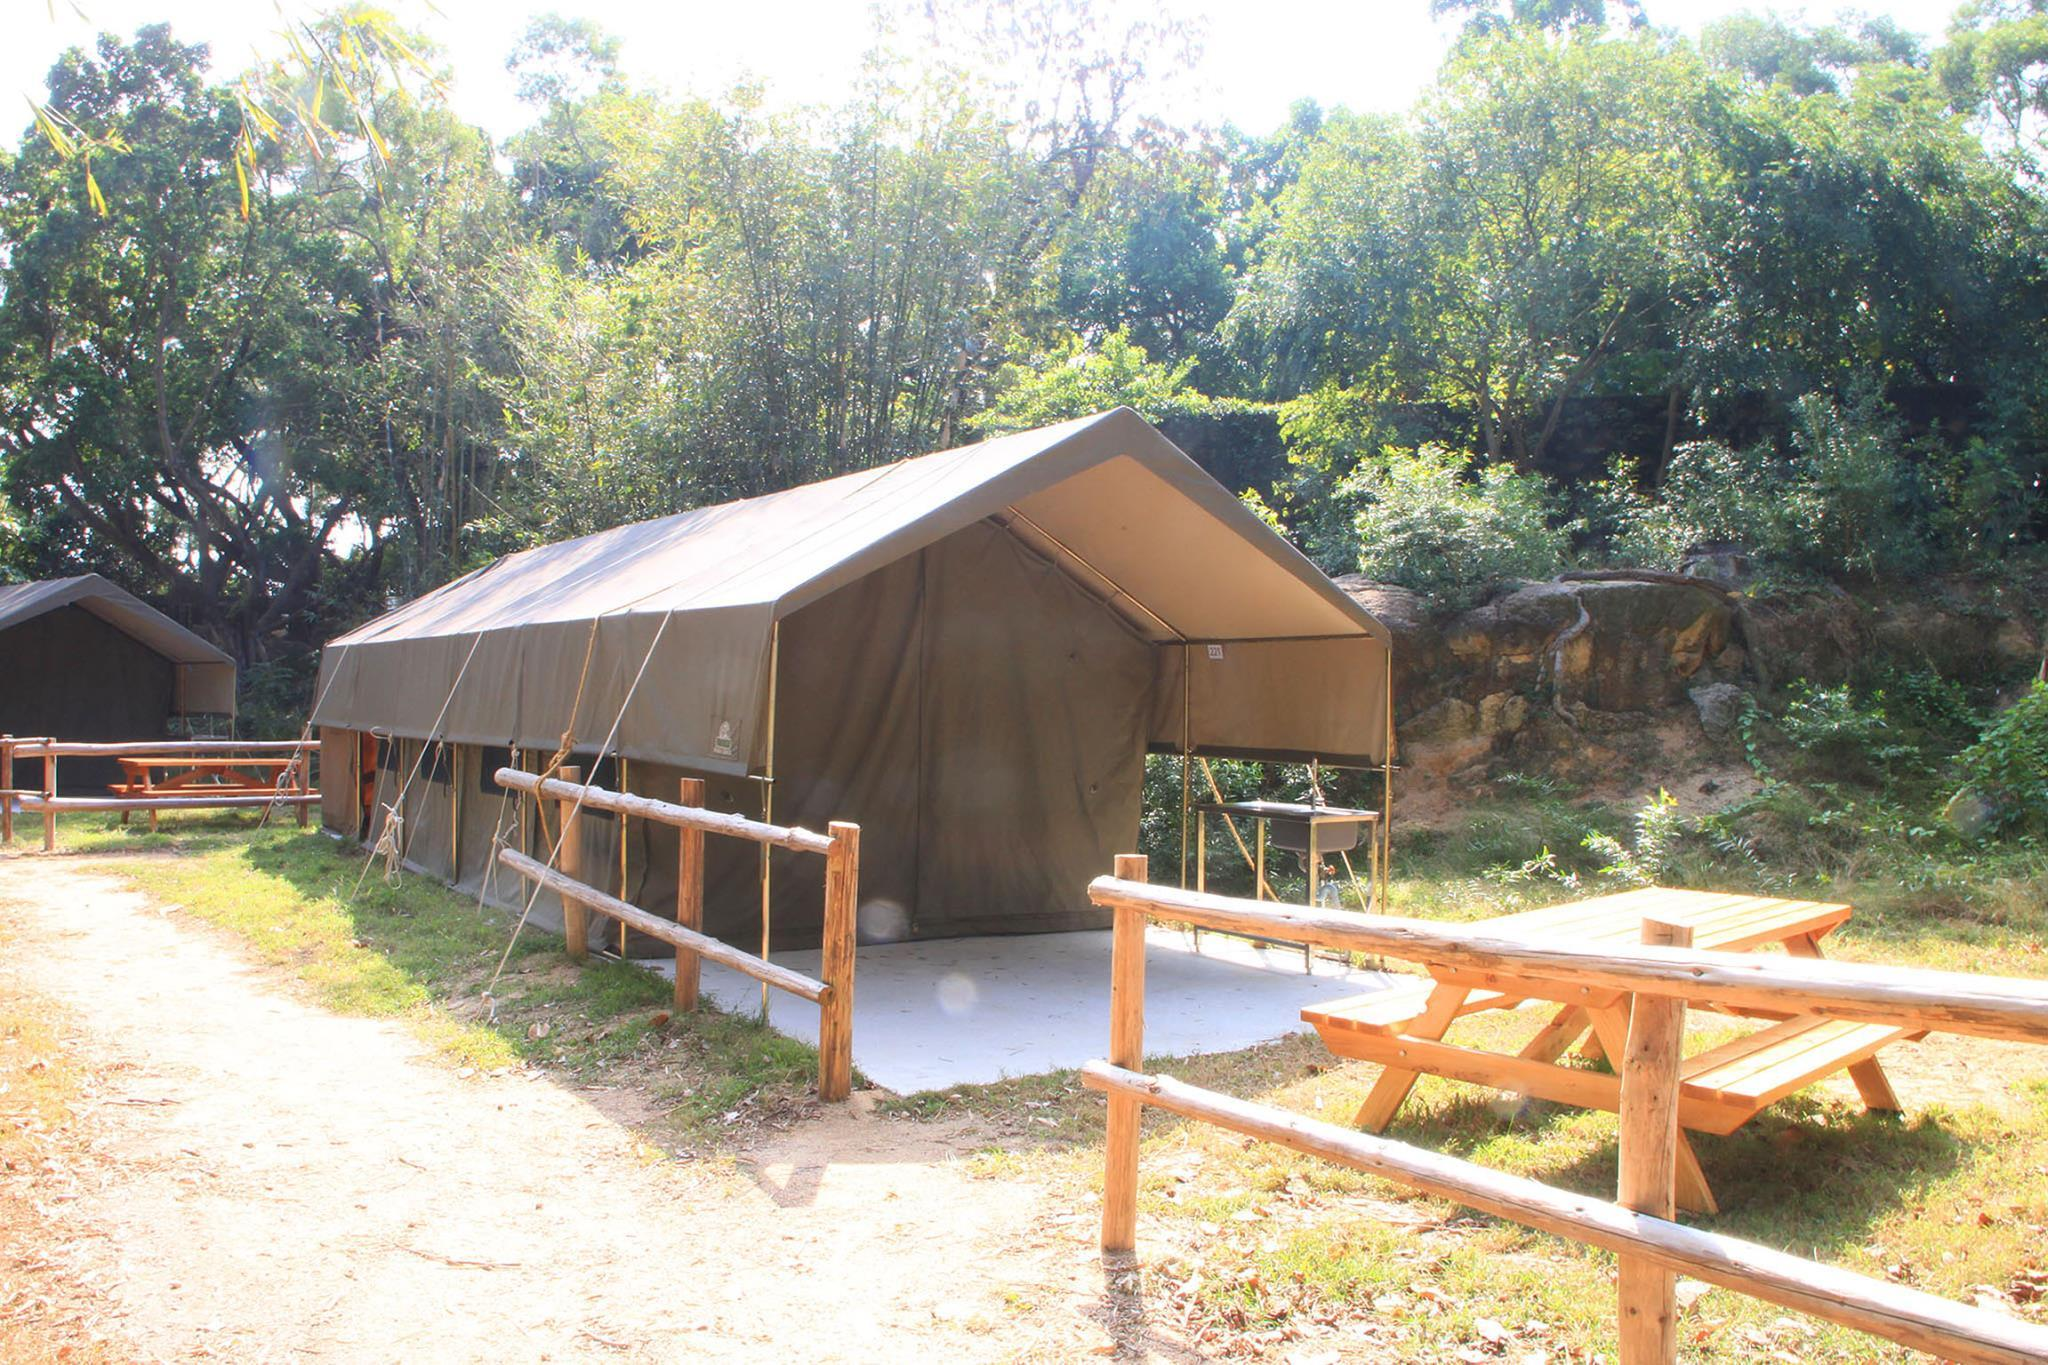 African Safari Tent(Home ver.) & Best Price on African Safari Tent(Home ver.) in Hong Kong + Reviews!